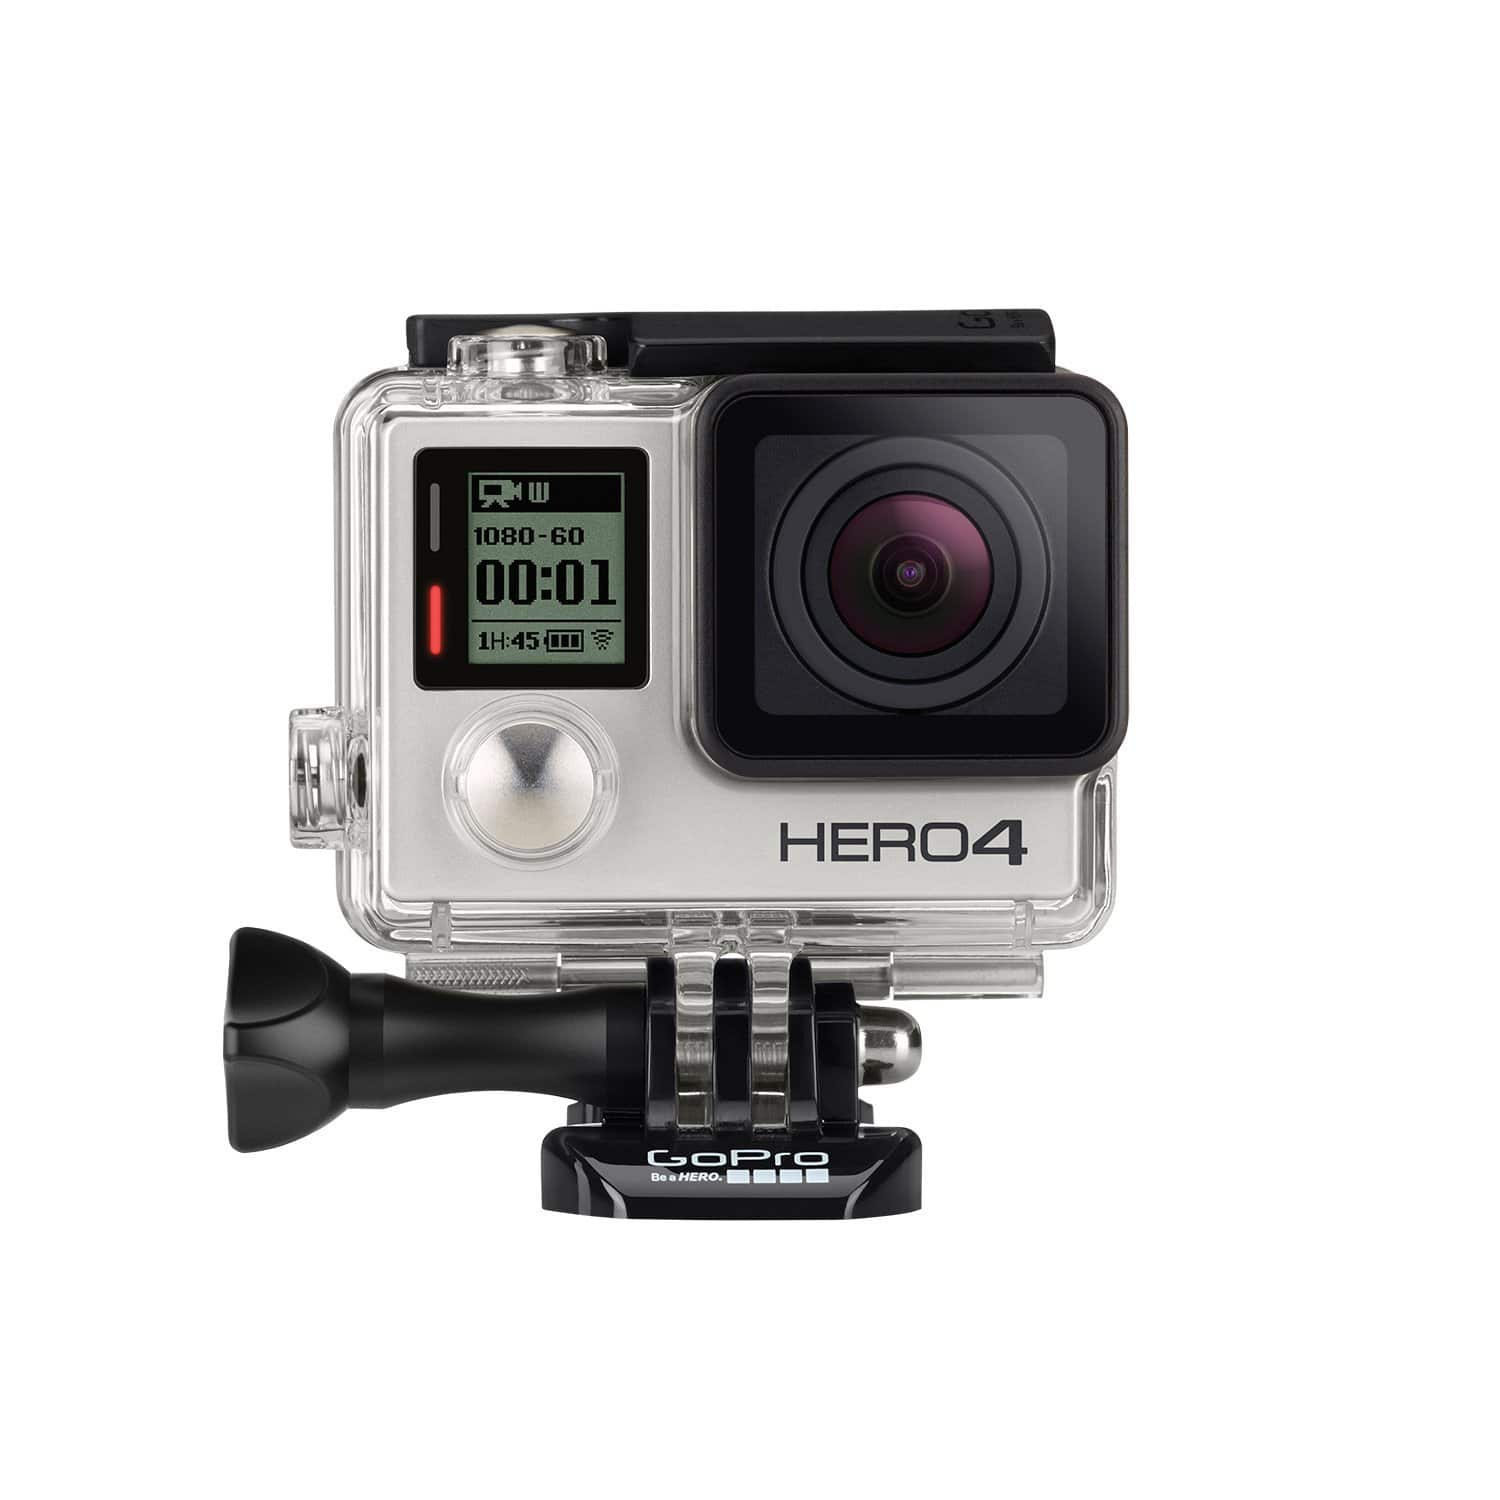 GoPro Hero4 Silver + Extra battery + Dual battery charger + SanDisk 16GB MicroSD $250 @ Costco *B&M YMMV Deal*